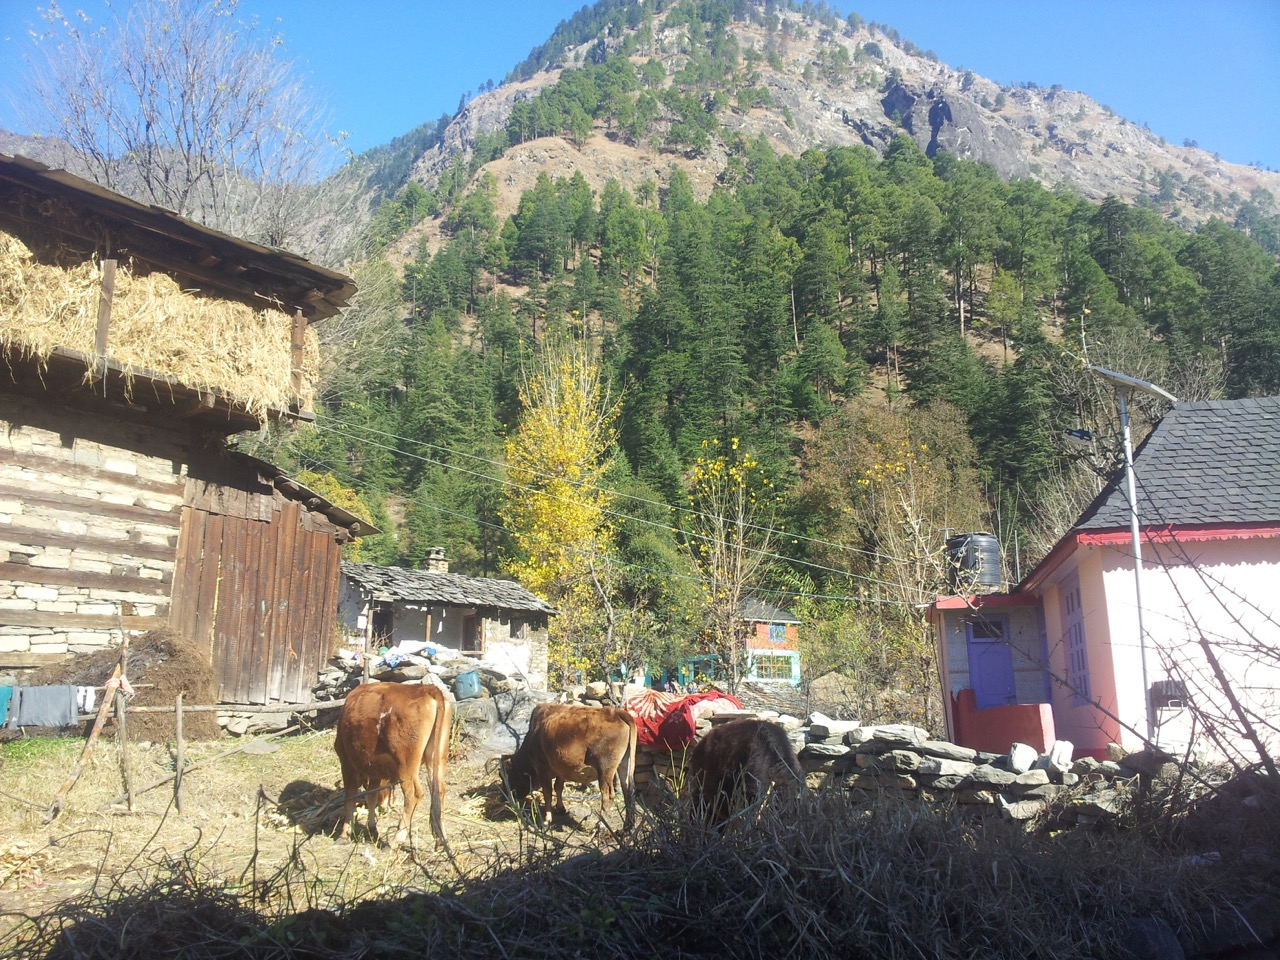 The trail passes right between the houses of Chhalal village. This is a cowshed located beside the trail.